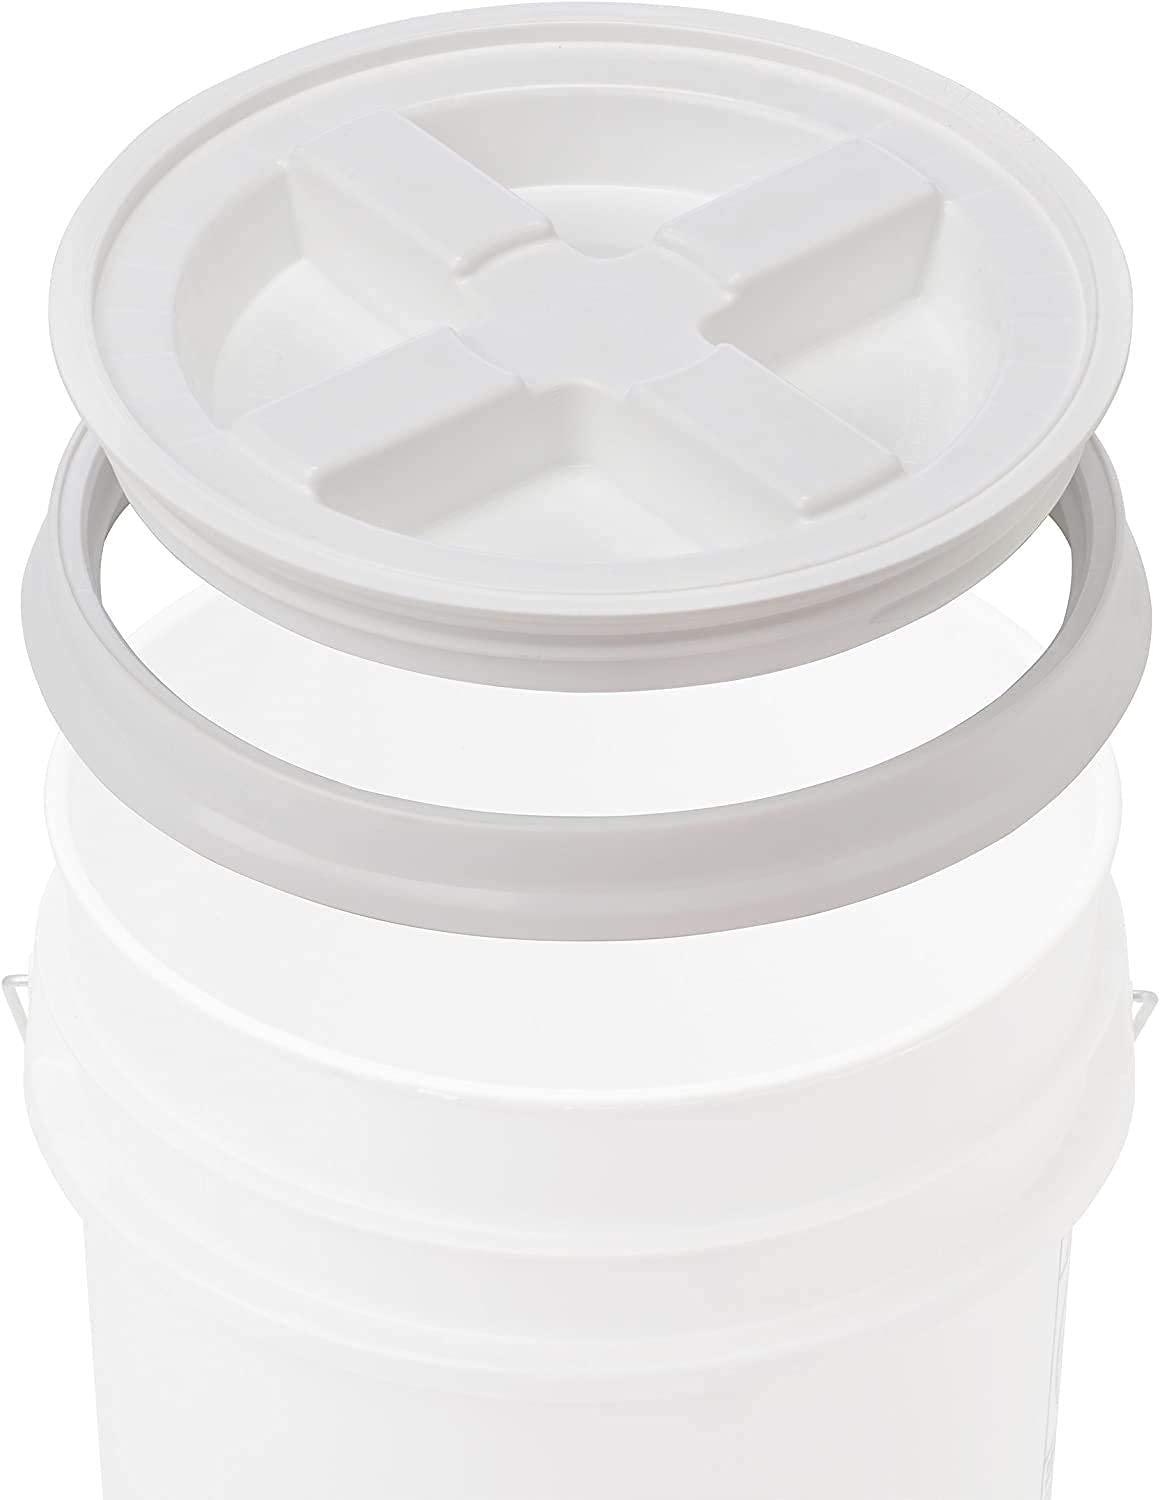 Gamma Seal Lid - White Storage Plastic Container Cover - Food Grade Gasket Airtight Lids - Screw Seal Multipurpose Covers - Fits 3.5 5 7 Gallon Buckets (3 Pack, White)